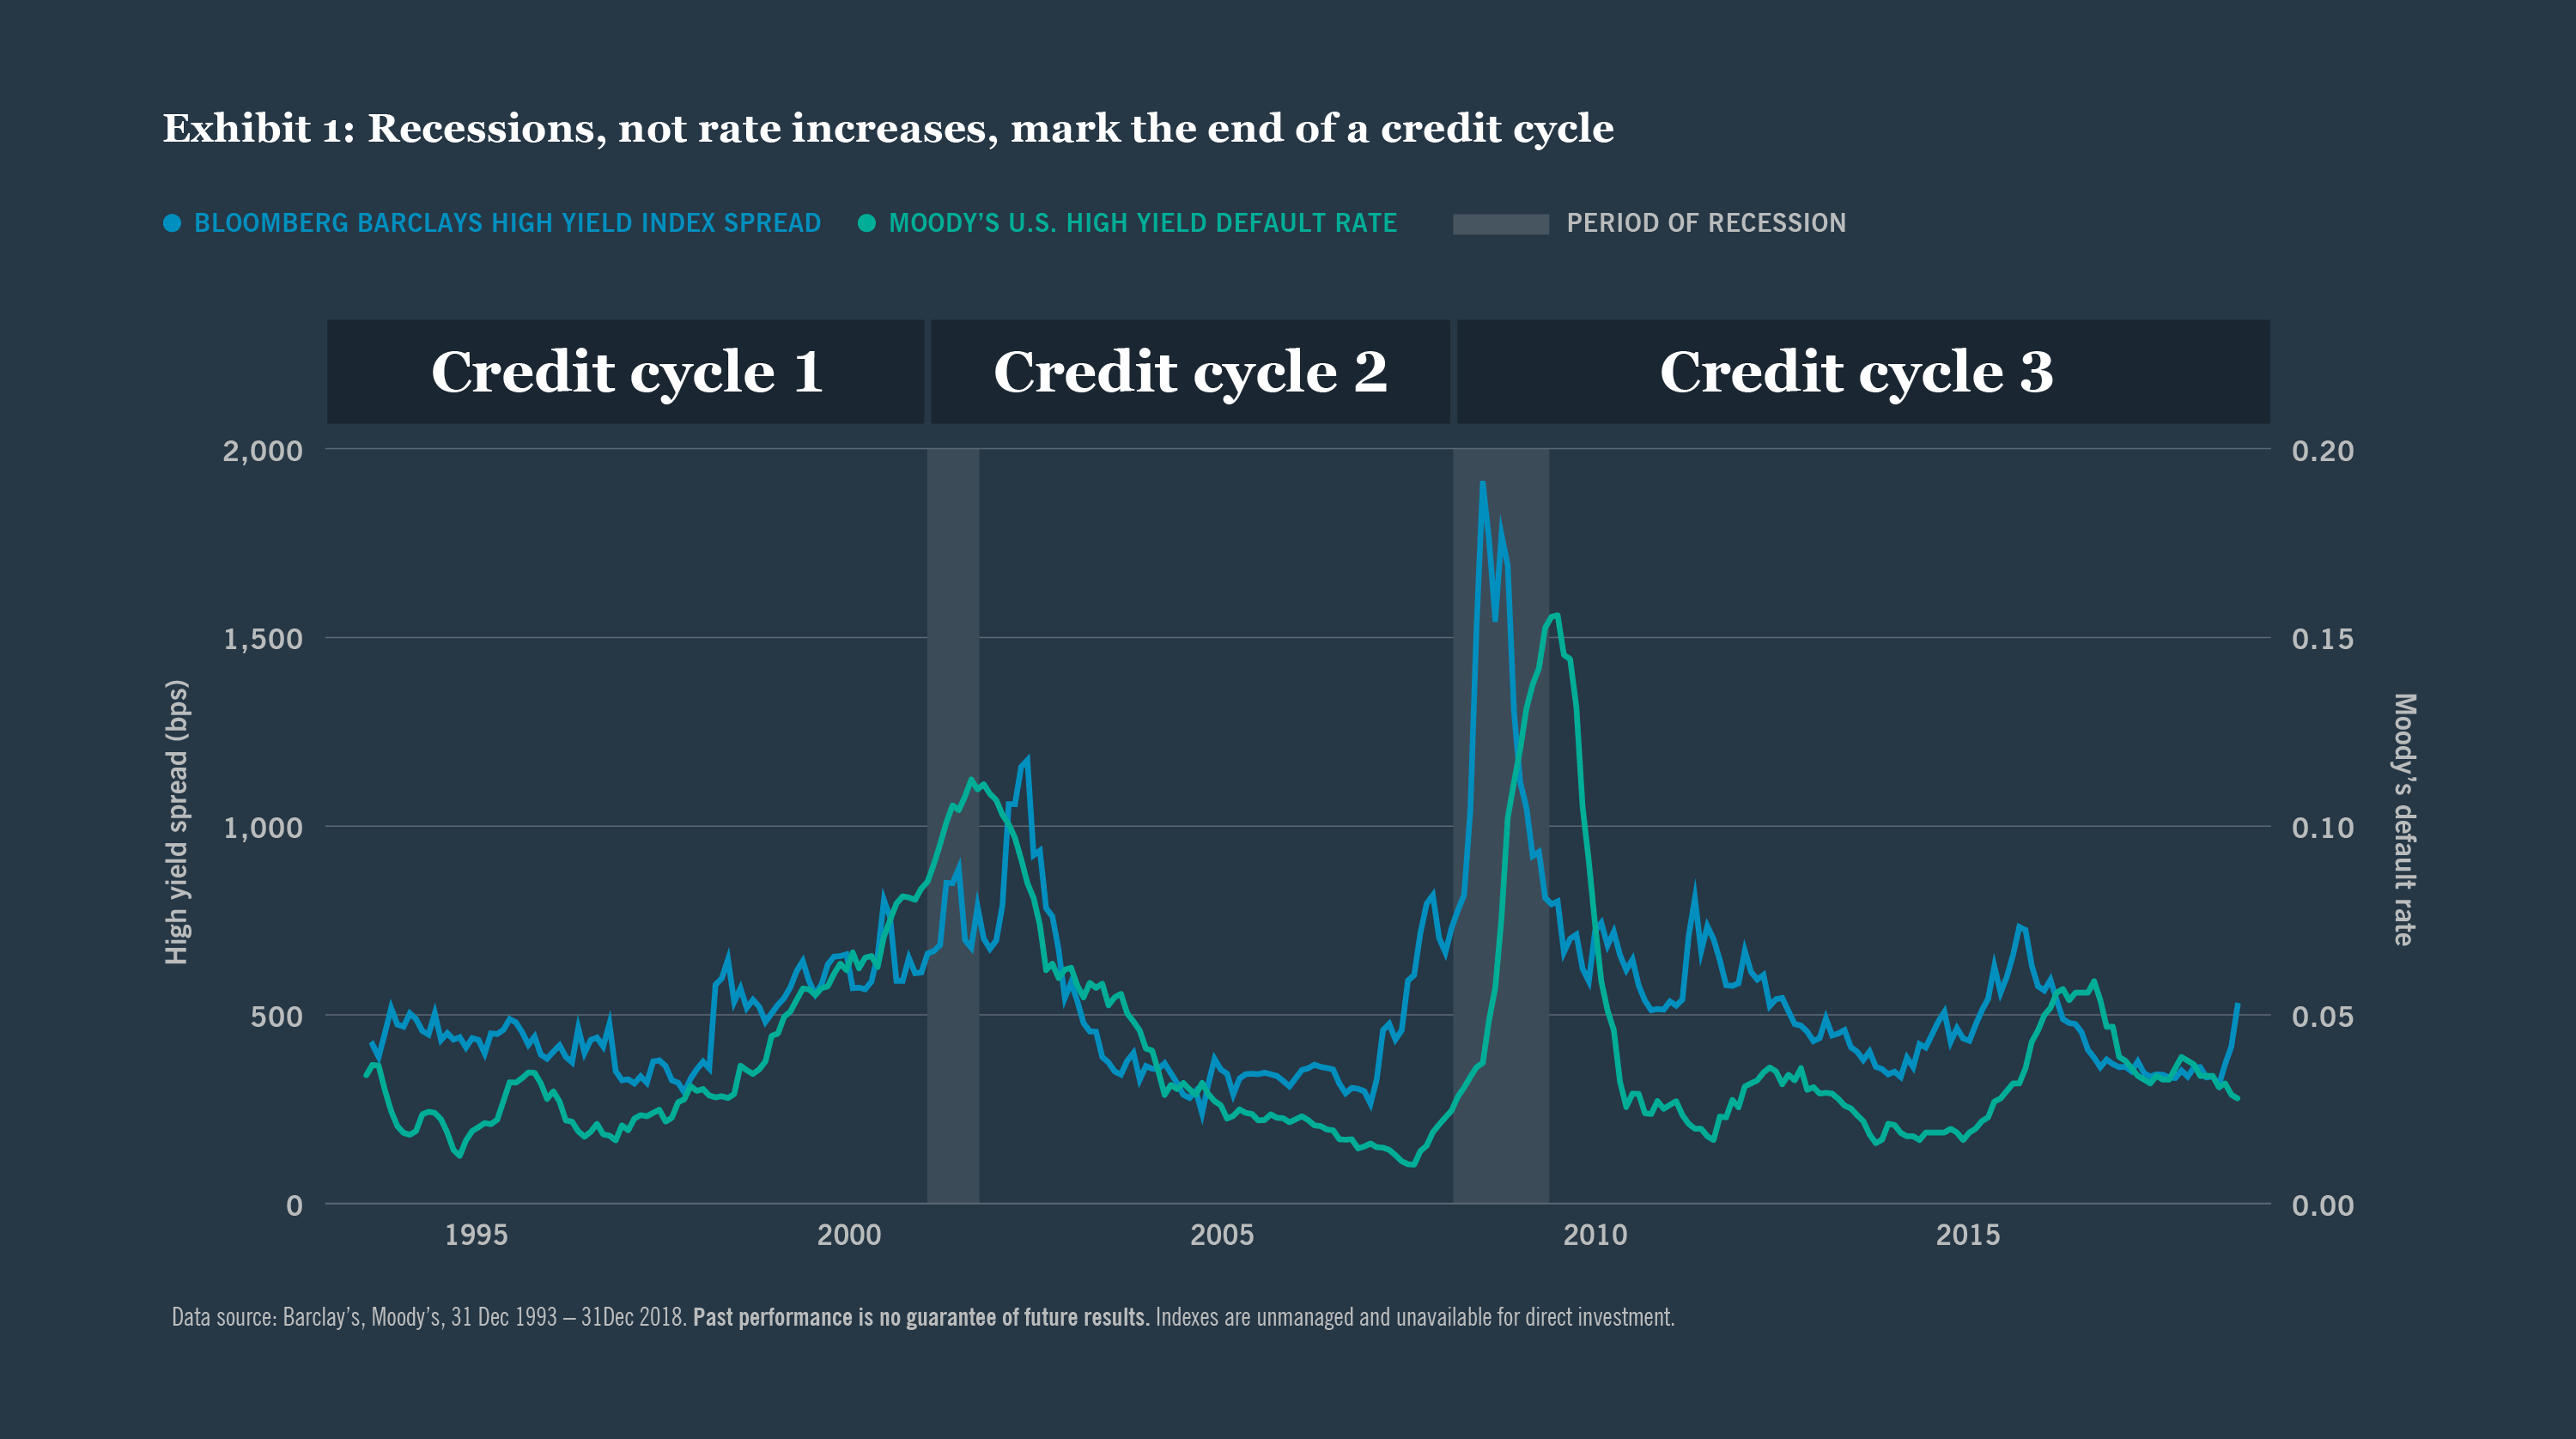 Exhibit 1: Reccessions, not rate increases, mark the end of a credit cycle